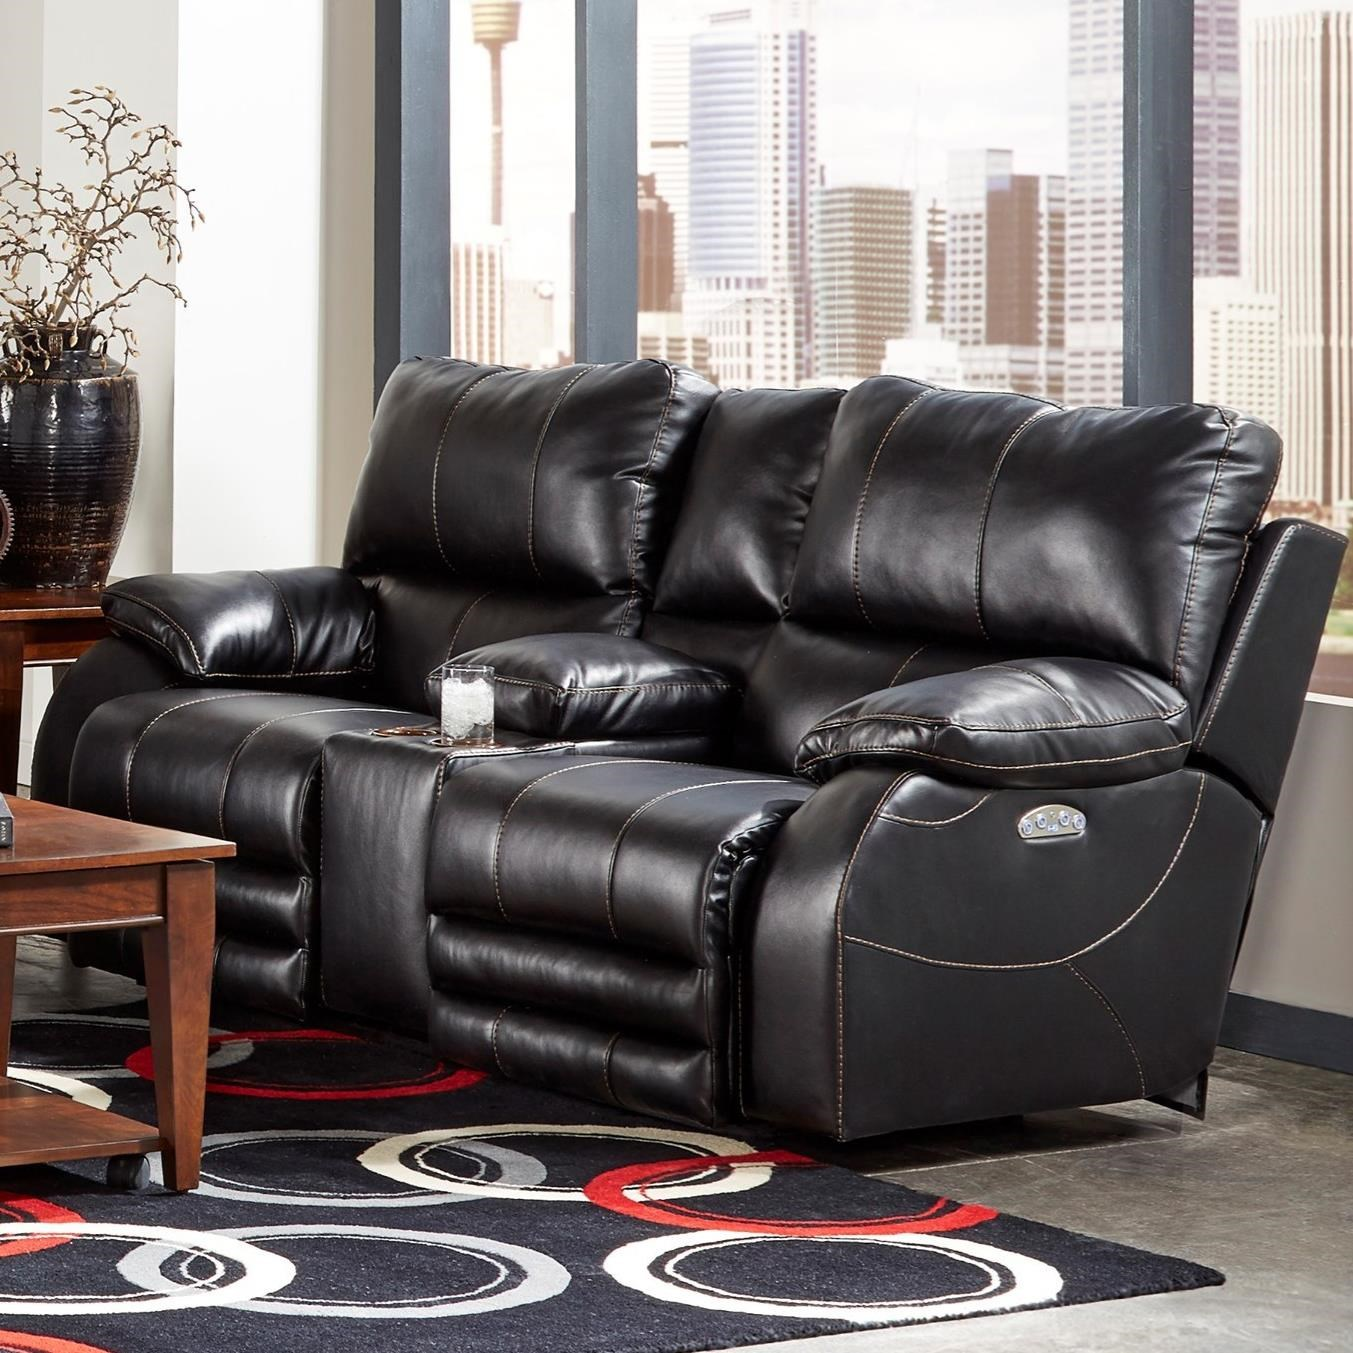 Catnapper Reclining Collection Power Headrest Power Lay Flat Loveseat - Item Number: 64279-Black